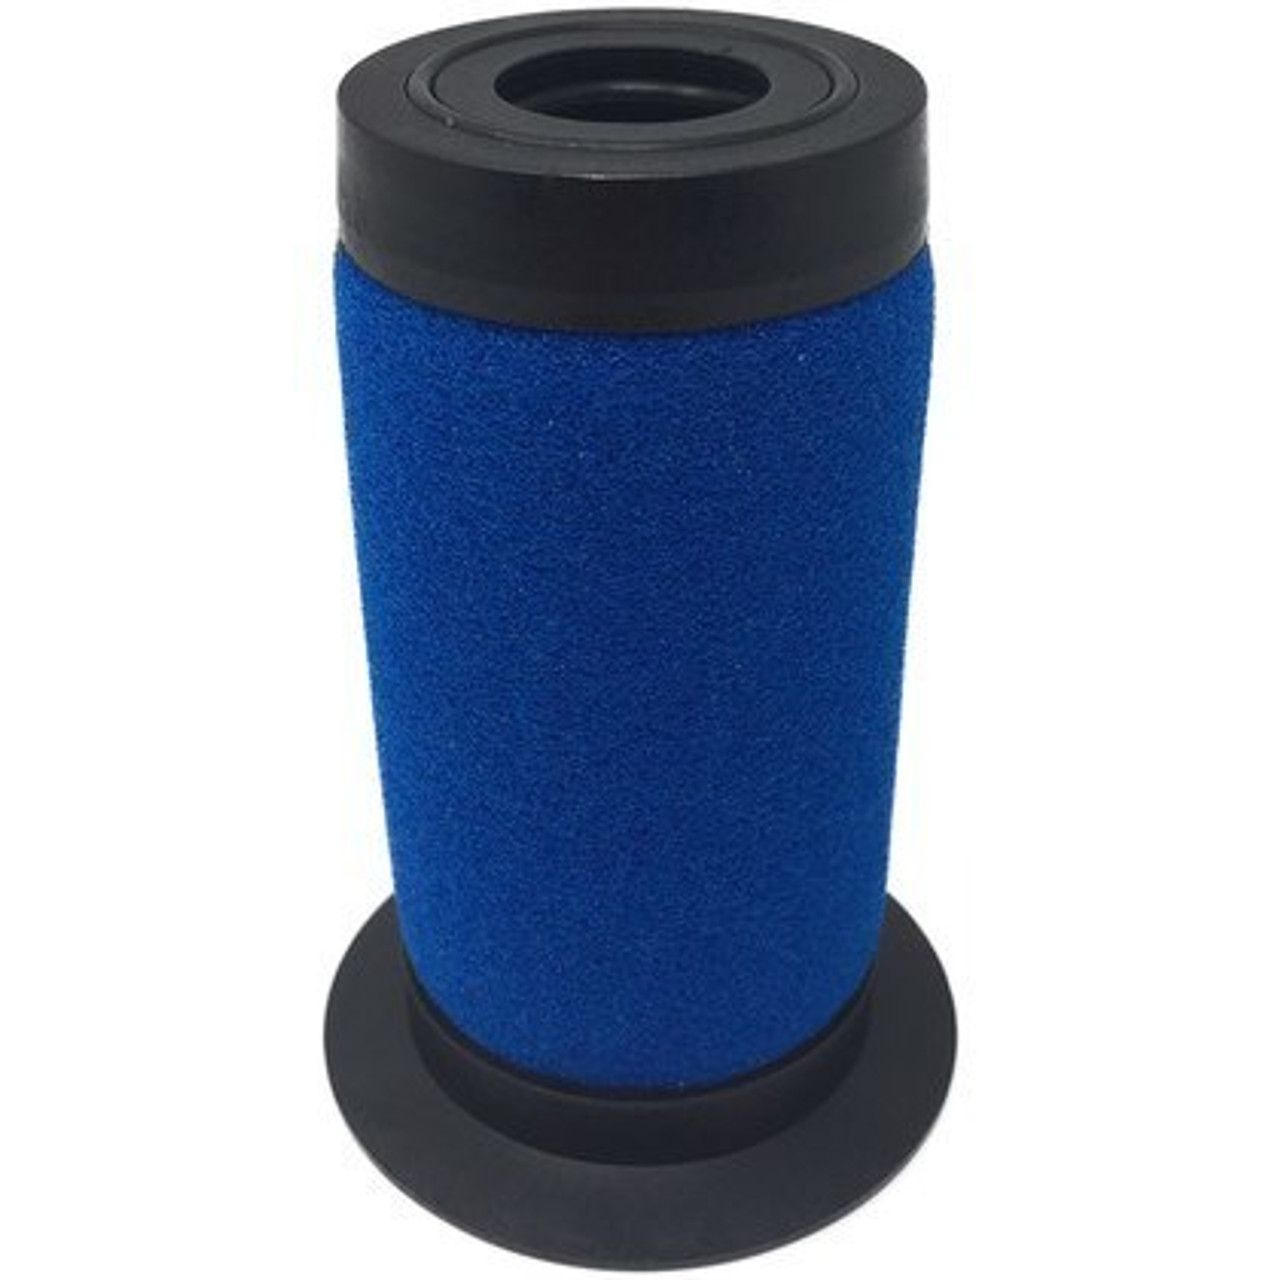 USVF-PV Replacement Filter Element for Kaeser KVF-8750P 0.01 Micron Particulate//0.003 PPM Oil Vapor Removal